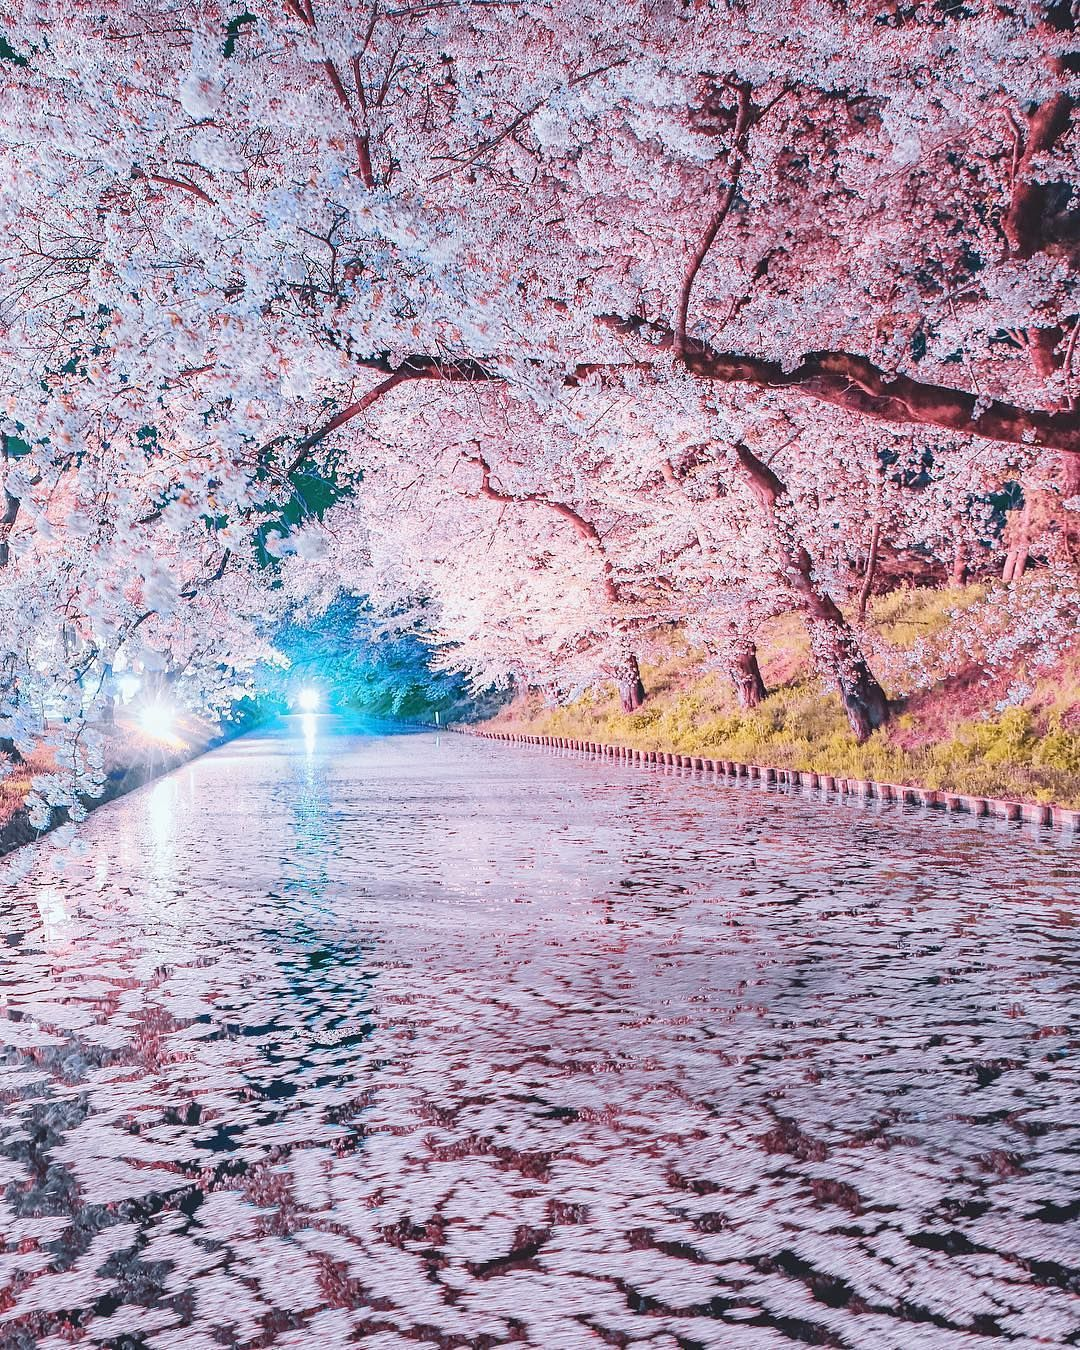 Sakura Season In Japan Is Something To Witness In Person Image By Youkixxx Curatio Beautiful Landscapes Beautiful Nature Wallpaper Beautiful Nature